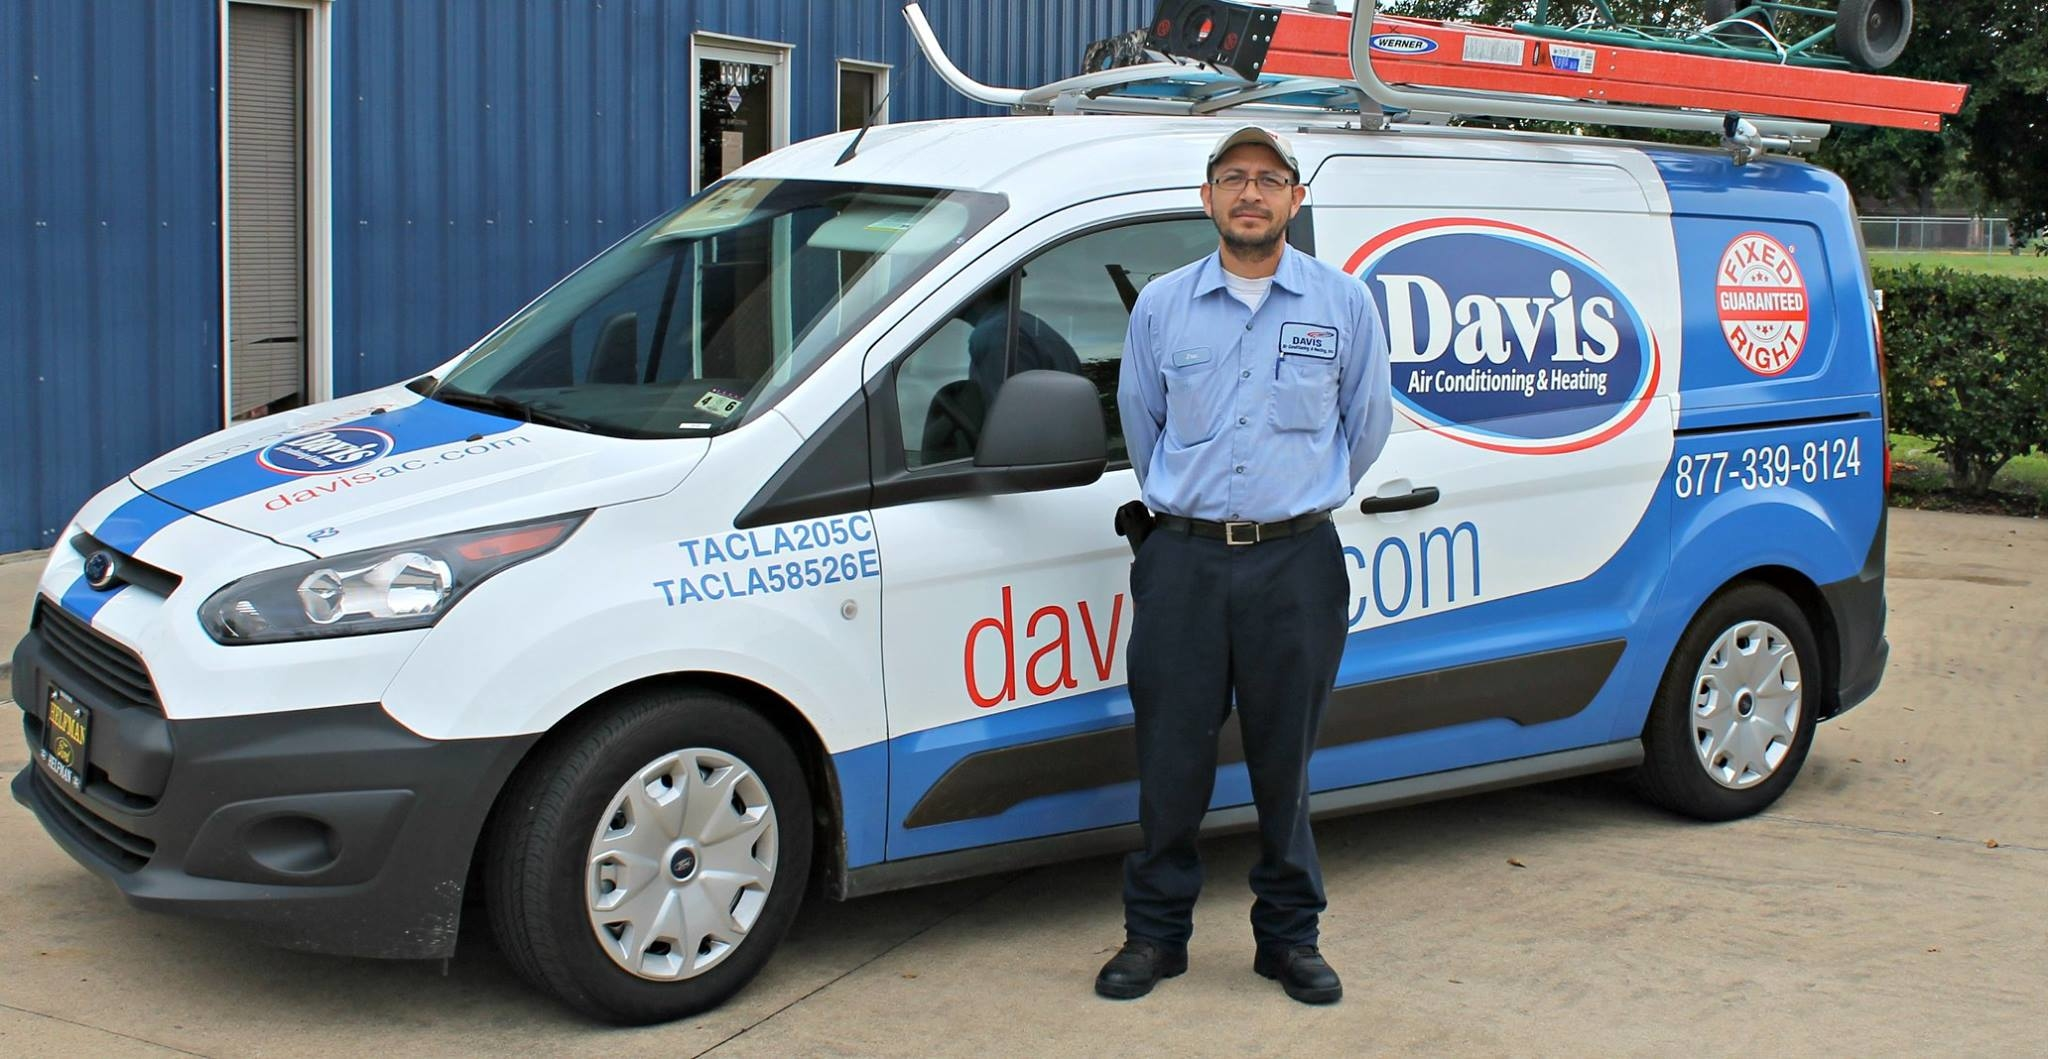 Davis Air Conditioning & Heating, Inc.